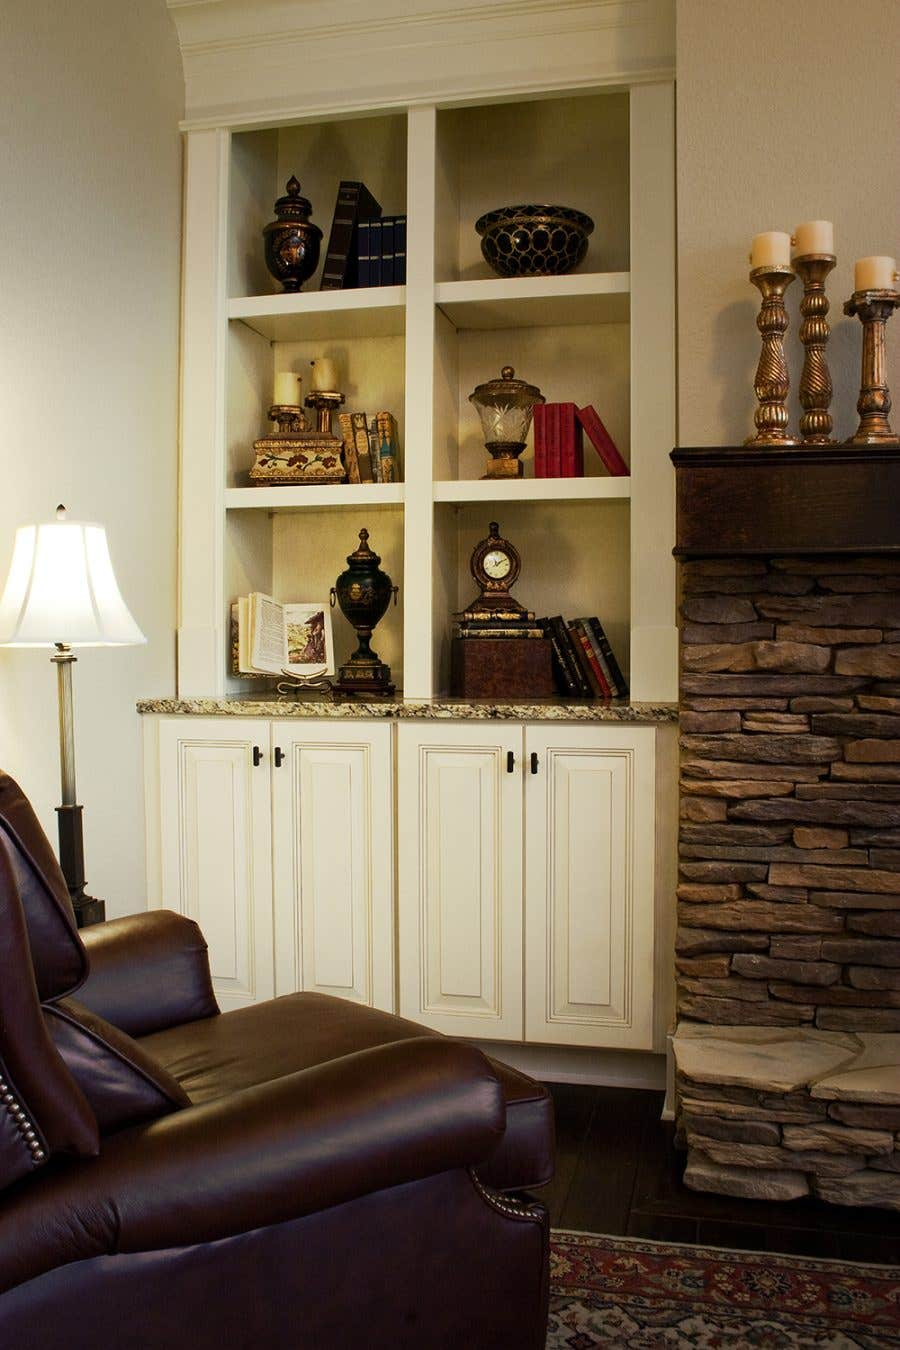 living room fireplace cabinetry shelving display